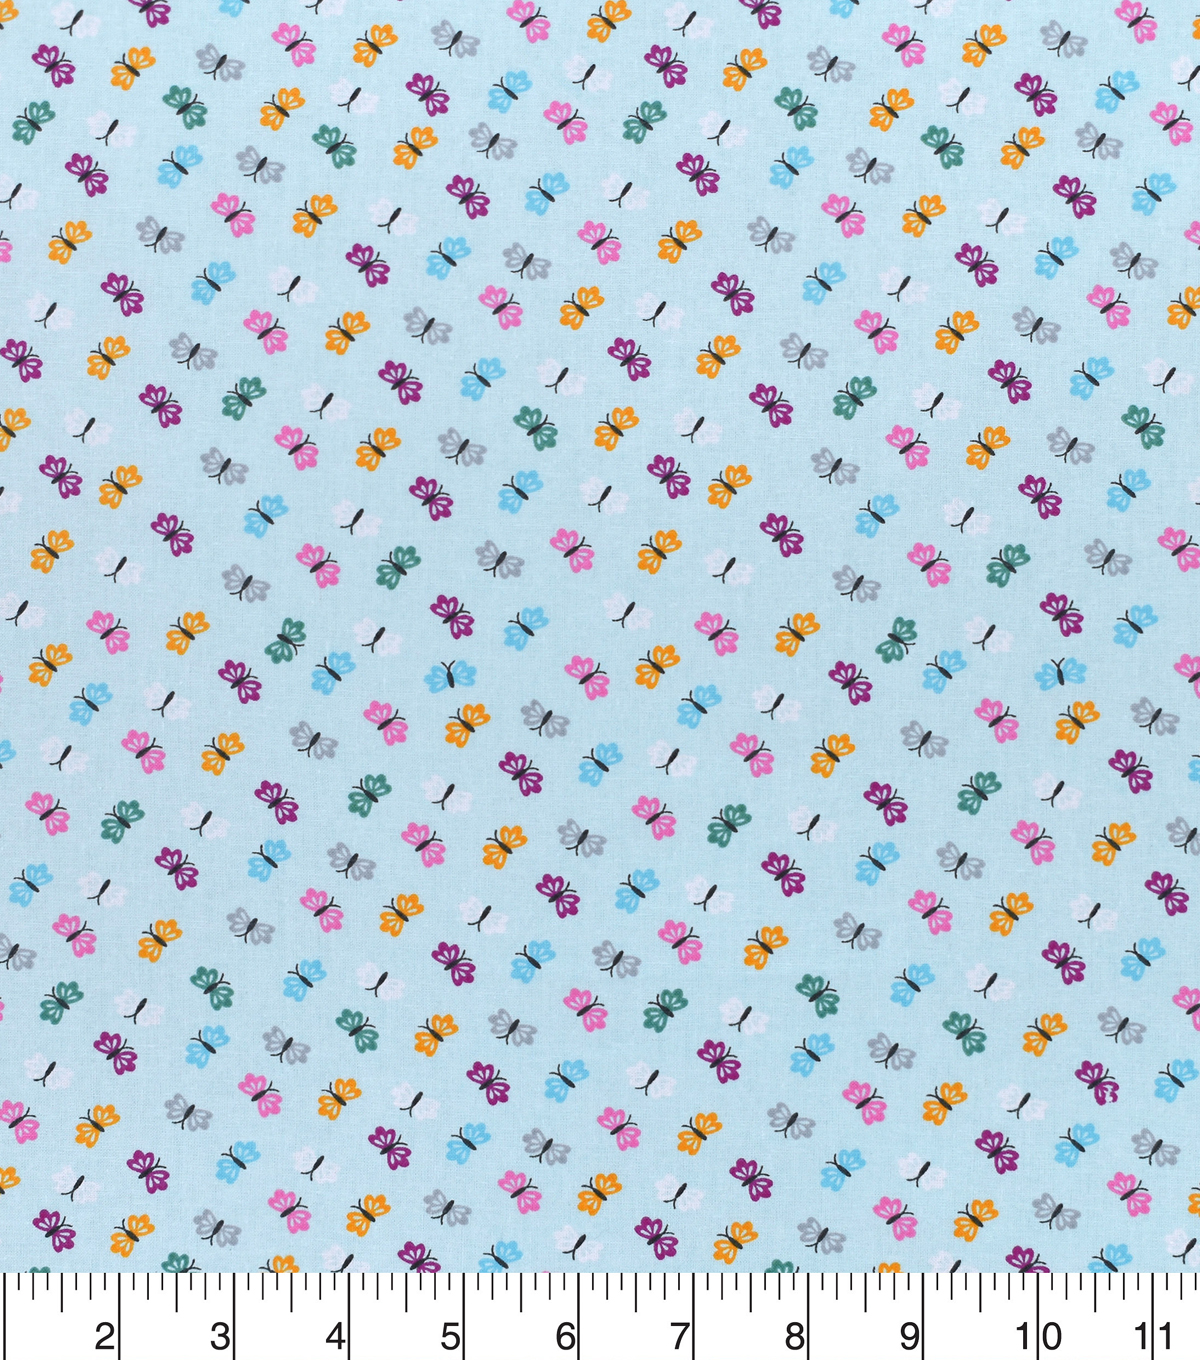 Nursery Cotton Fabric -Bright Butterfly